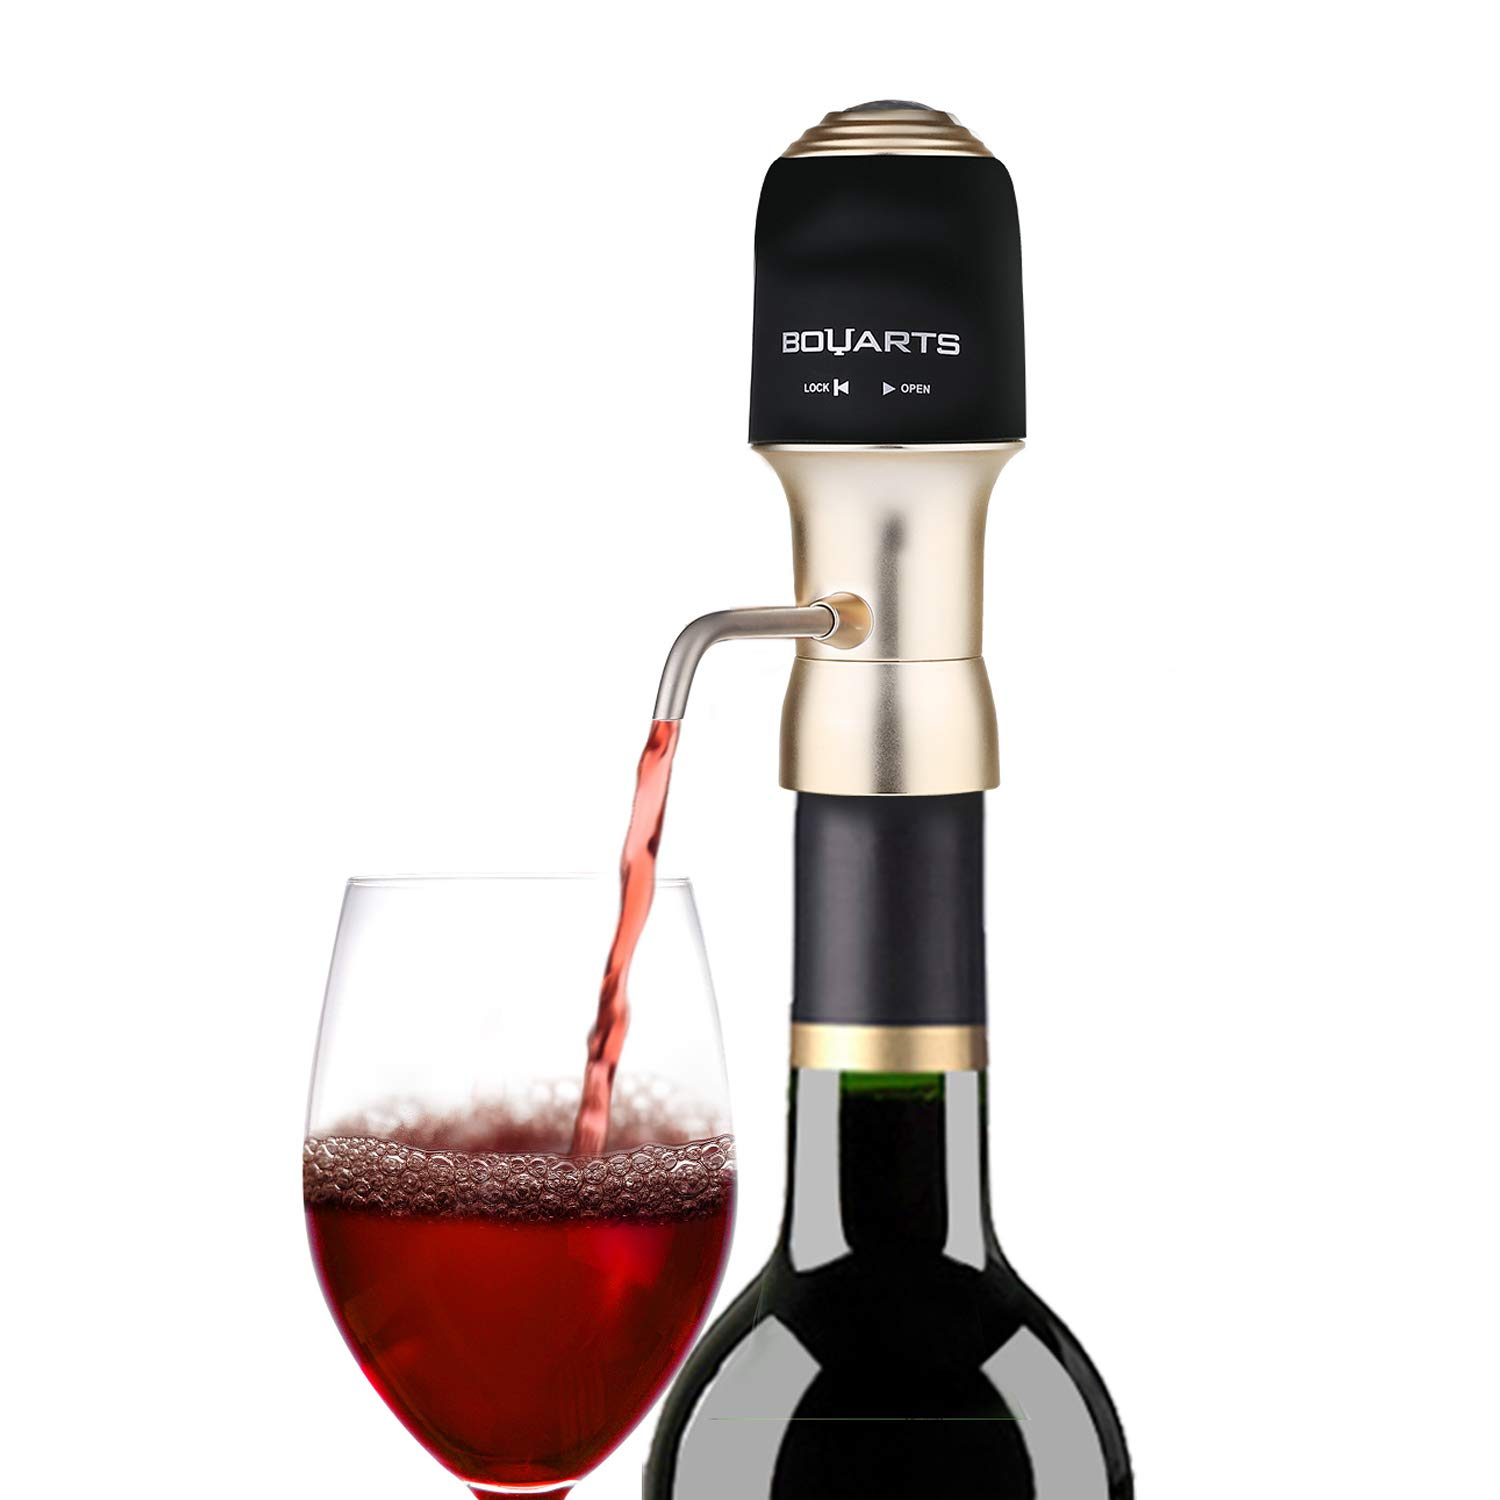 BOUARTS Wine Aerator Wine Gifts, FDA Approved, One-Touch Portable Luxury Wine Air Pressure Aerator with Edible Grade Silicone Material, Convenient Spout, Enhance Wine Flavor of All Ages, Gift Box by BOUARTS